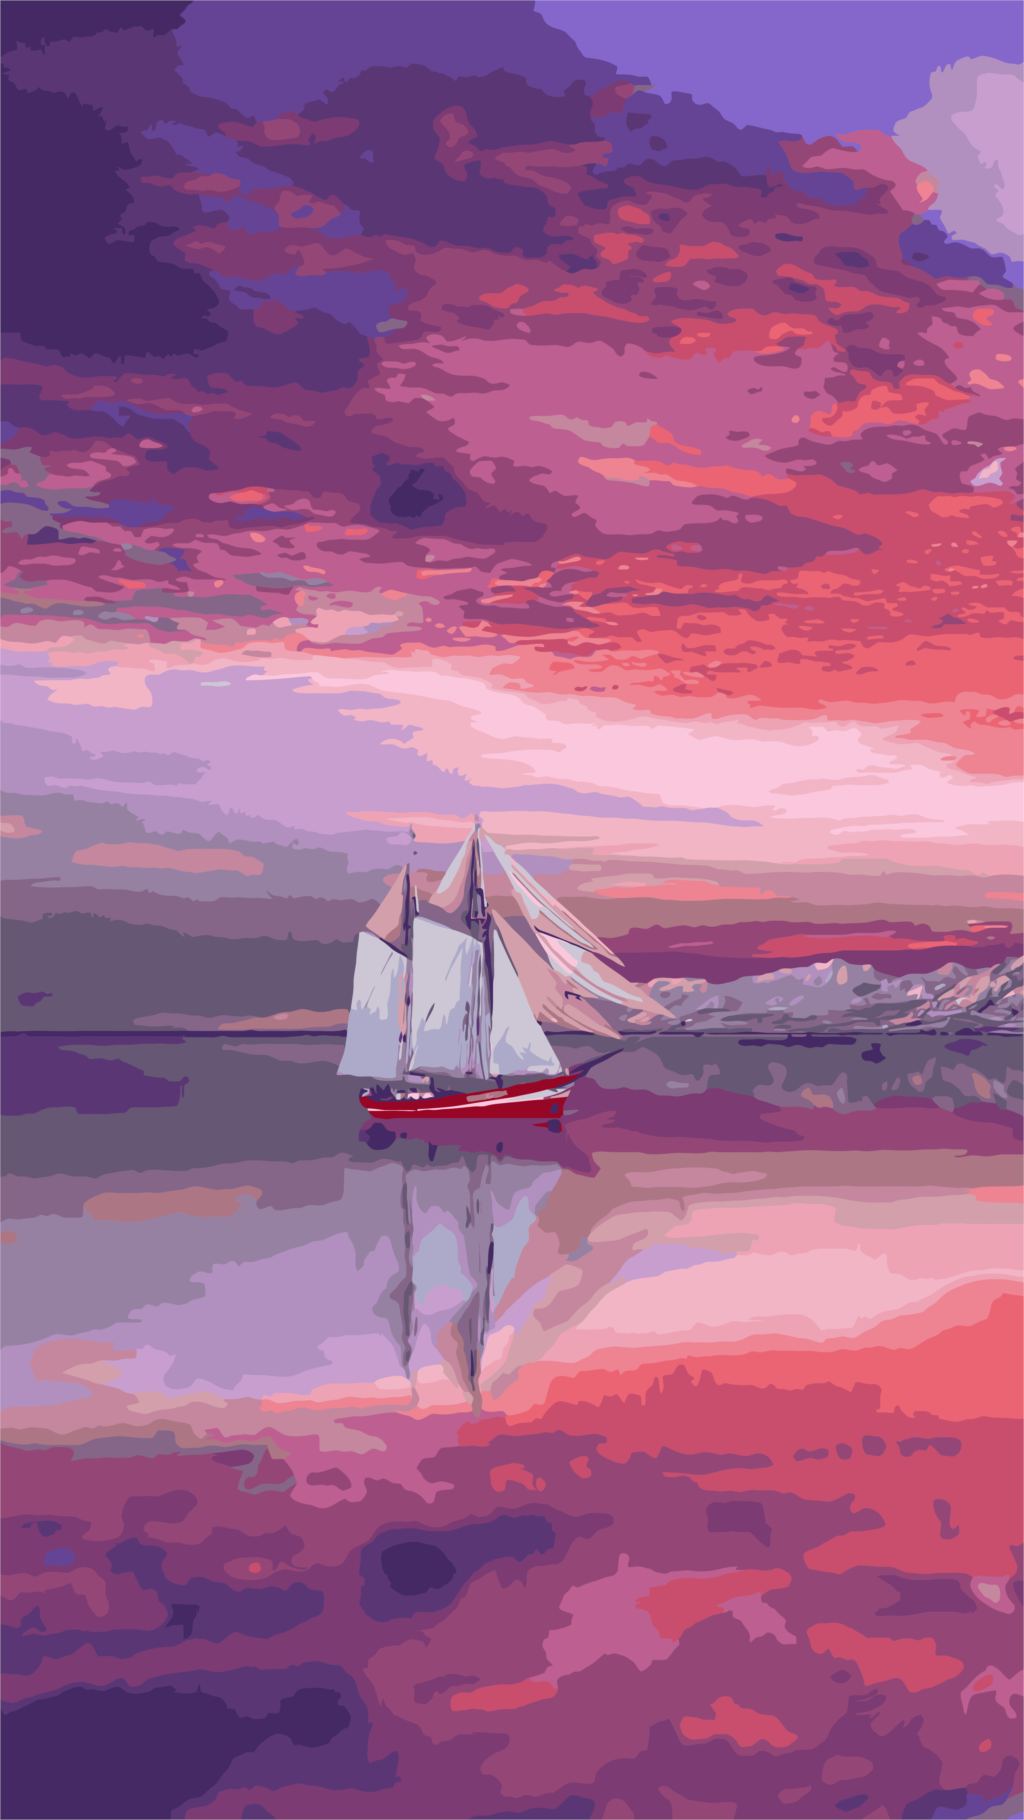 Colorful Sky & Ship Painting Kit